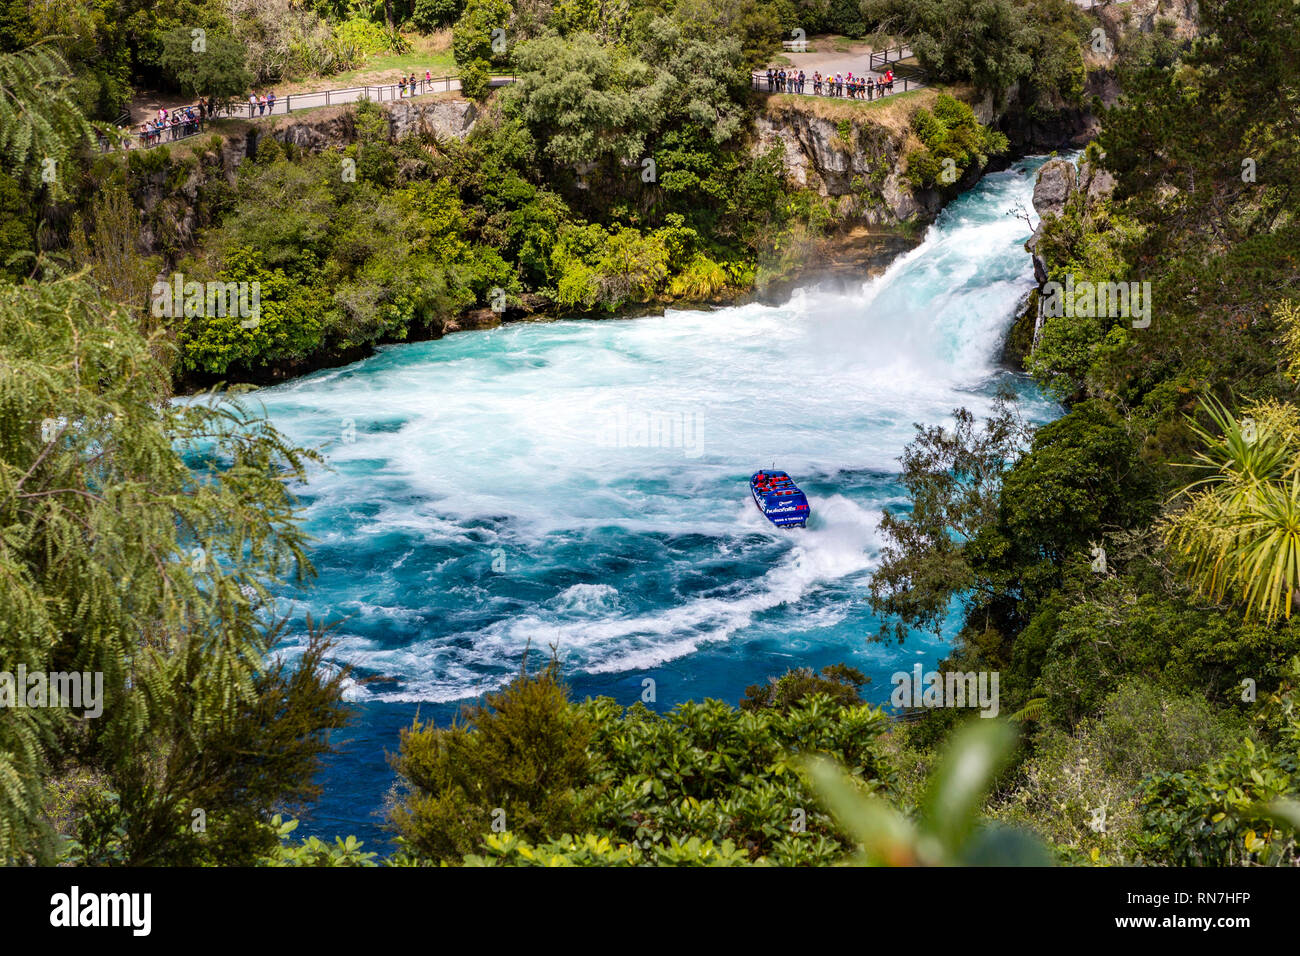 Taupo, New Zealand - April 26 2017: Tourist adventure in Huka Falls with Huka jet boat the most famous iconic thriller activity in Taupo, New Zealand. - Stock Image